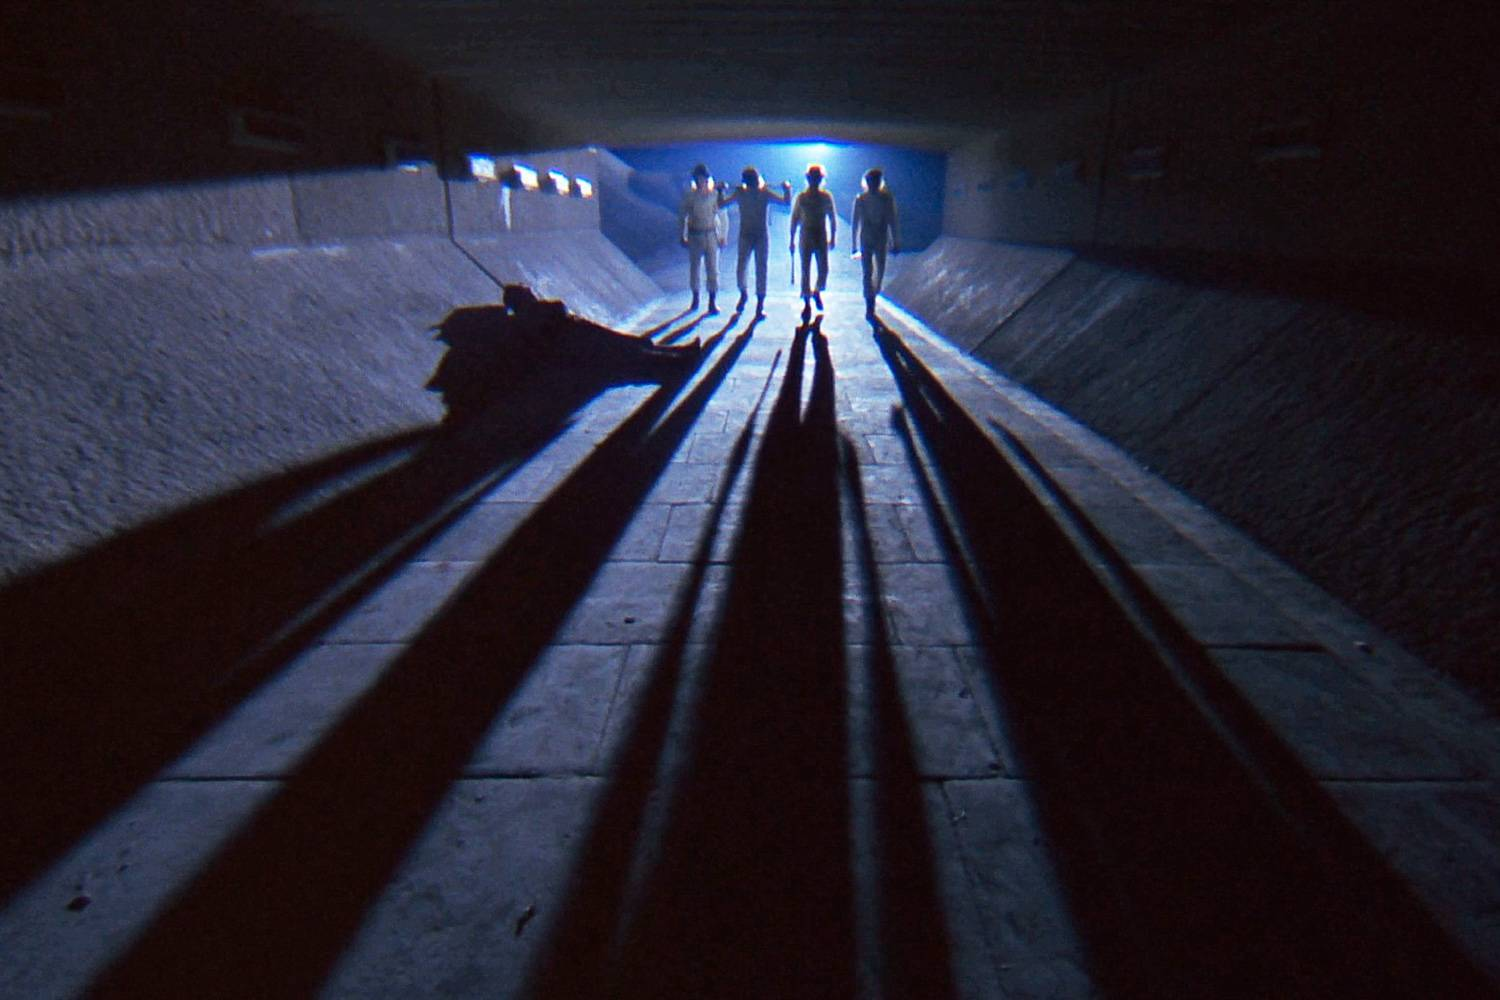 Image still of the gang walking through the tunnel in A Clockwork Orange.